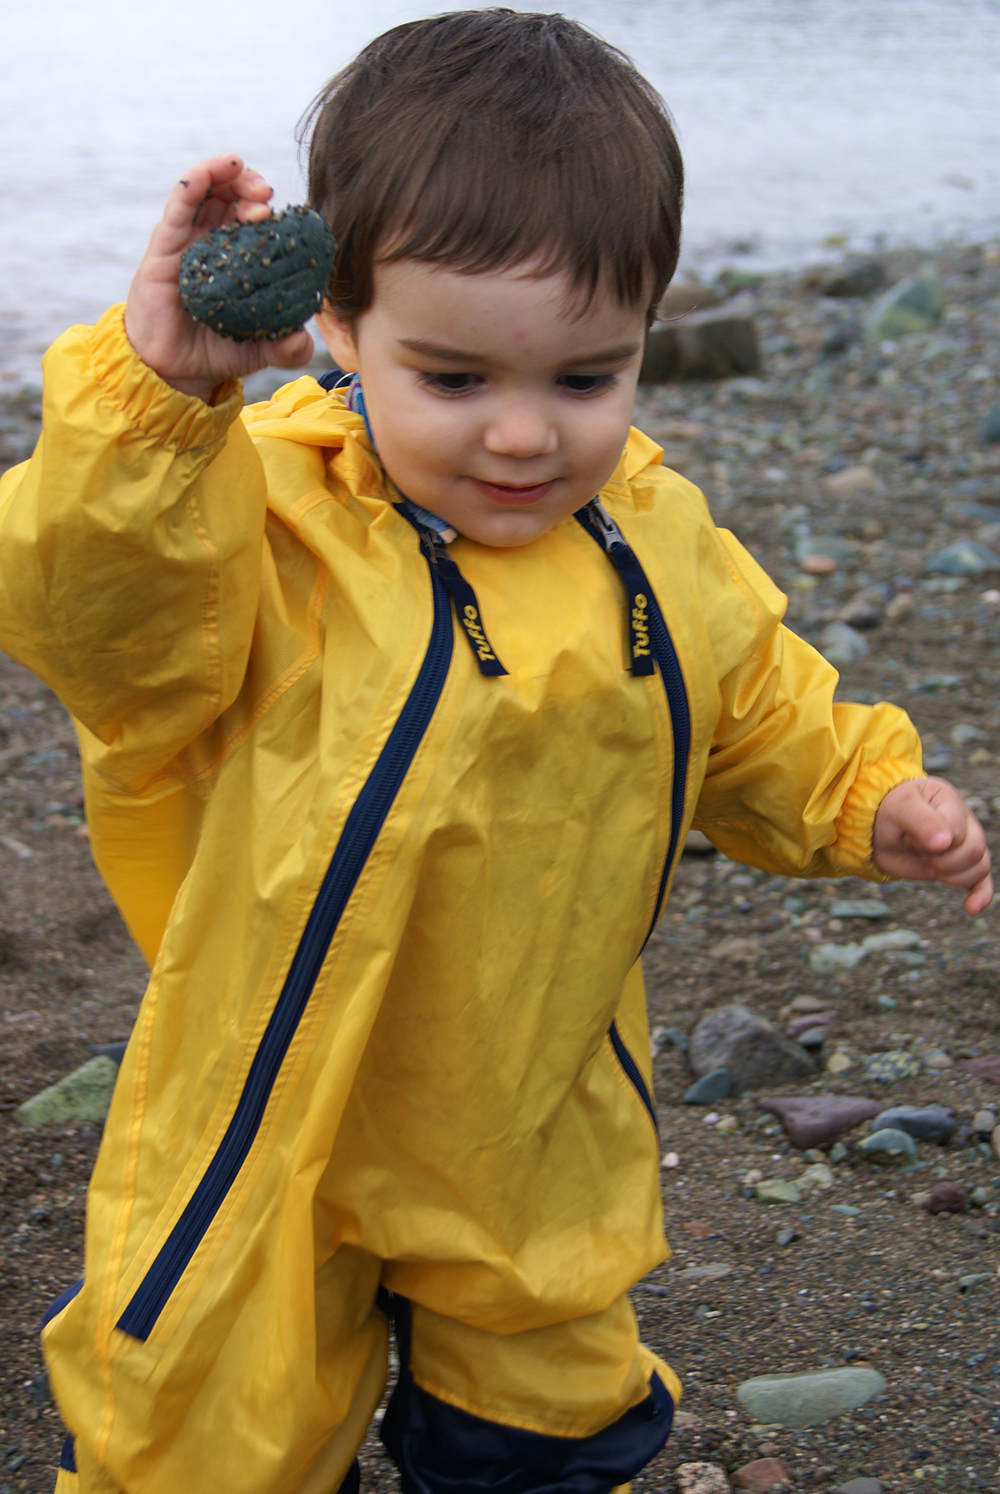 Rocks, nature's best toy